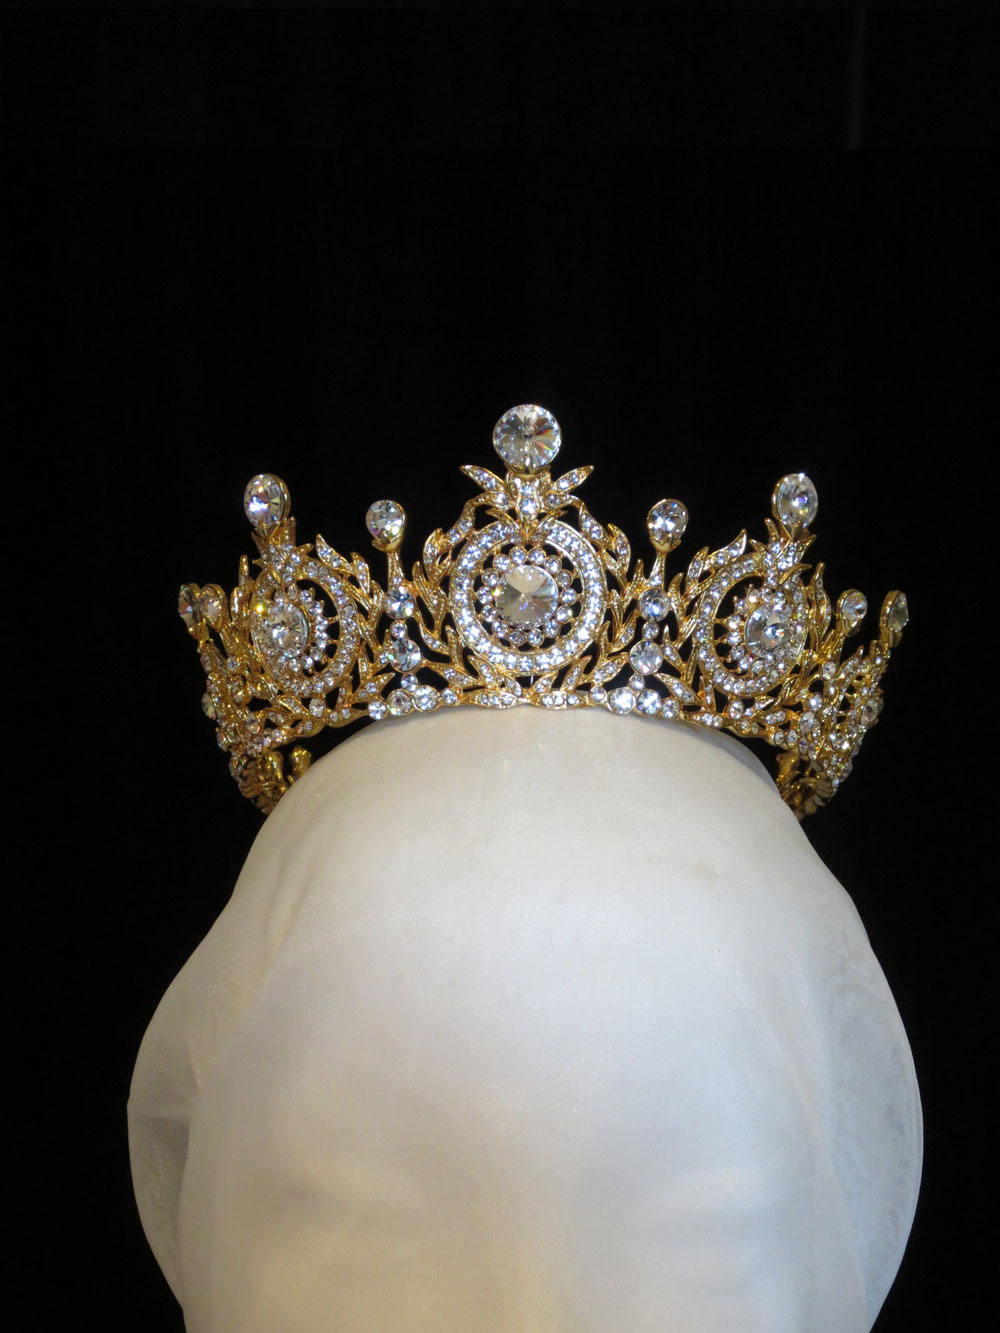 John-Zimmerman-Couture-Headpieces-and-Tiaras-Model-Queen-Gallery-Image-1